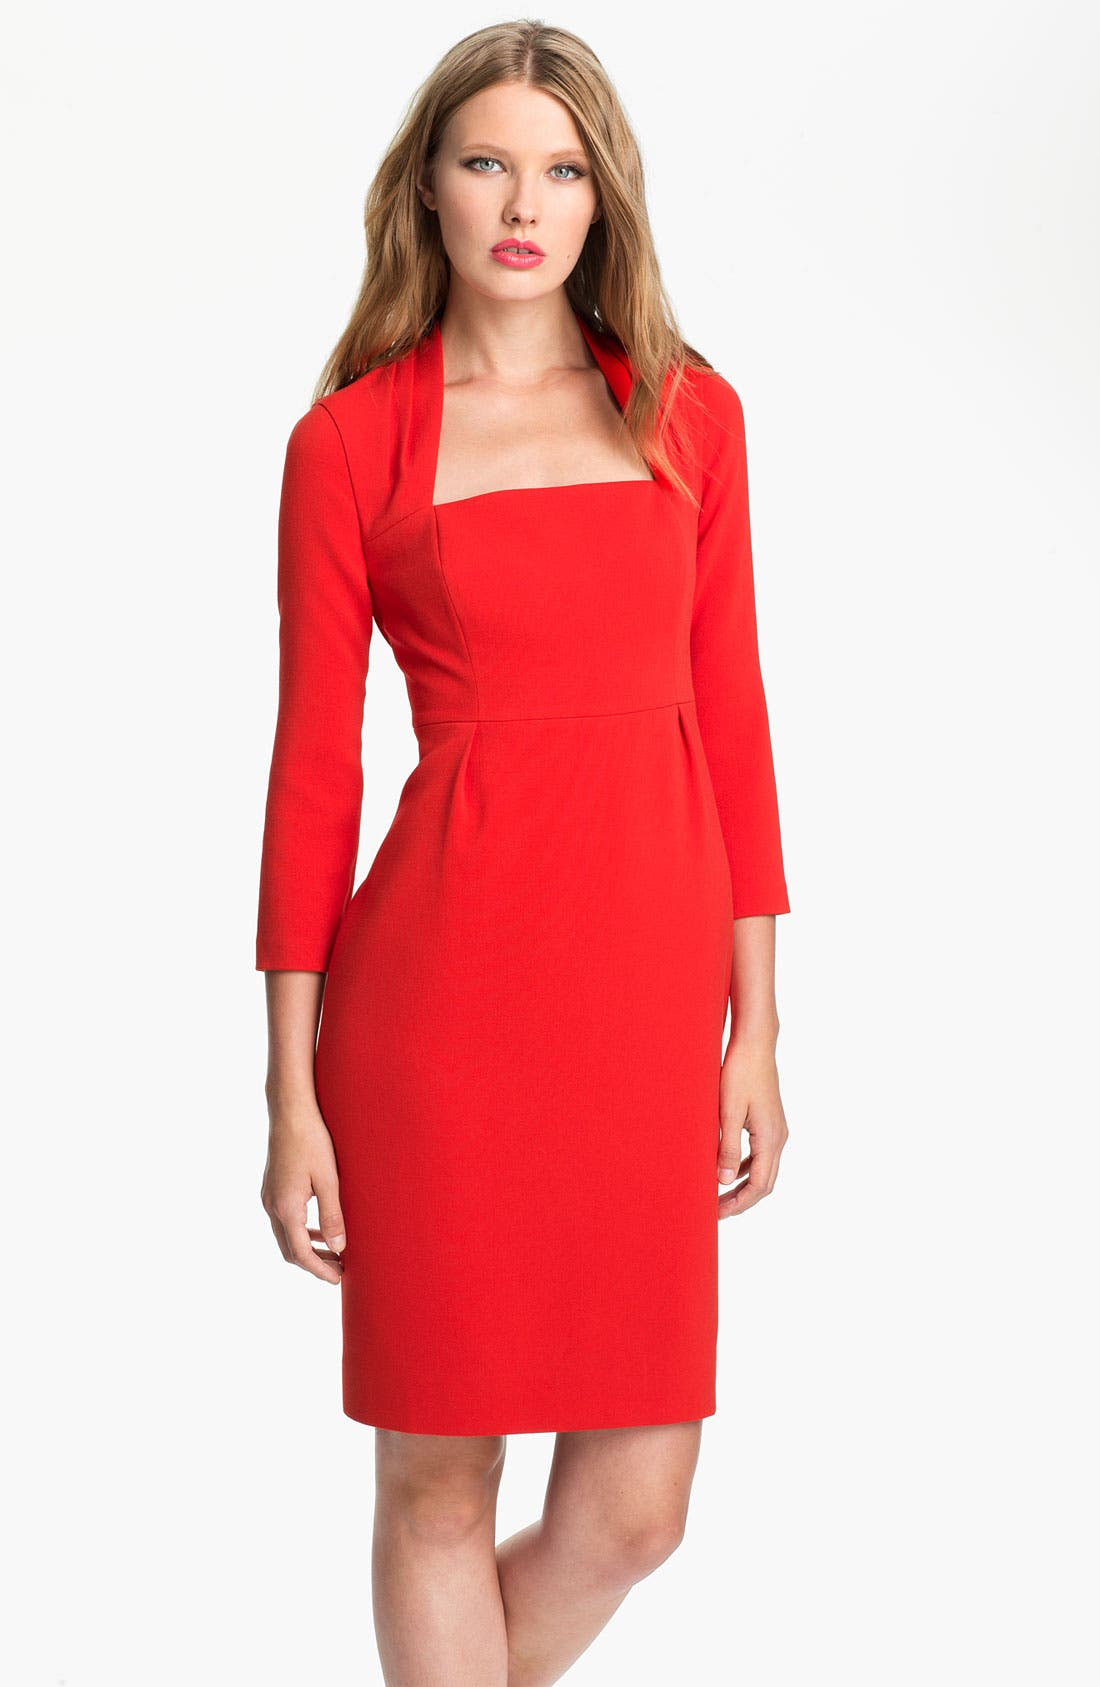 Alternate Image 1 Selected - kate spade new york 'shiella' woven sheath dress